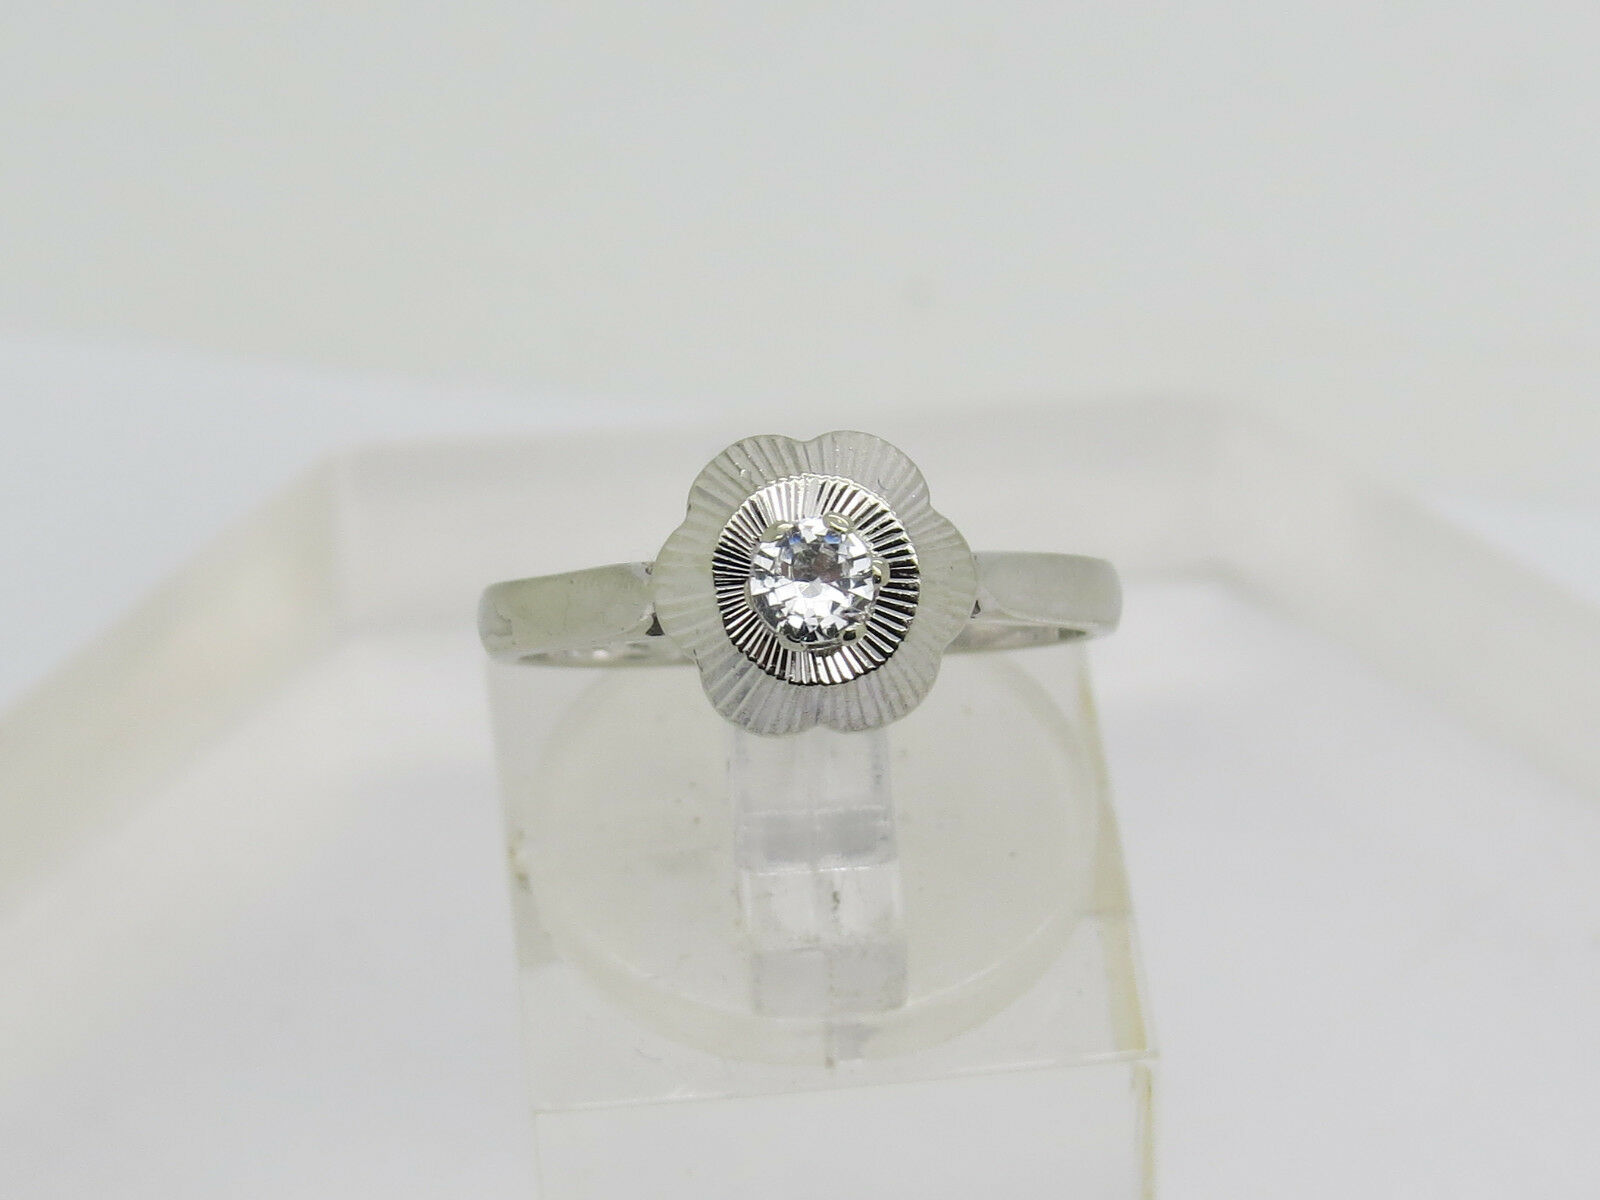 Solid 18k .750 White gold Round White Spinel Gemstone Solitaire Ring Size 7